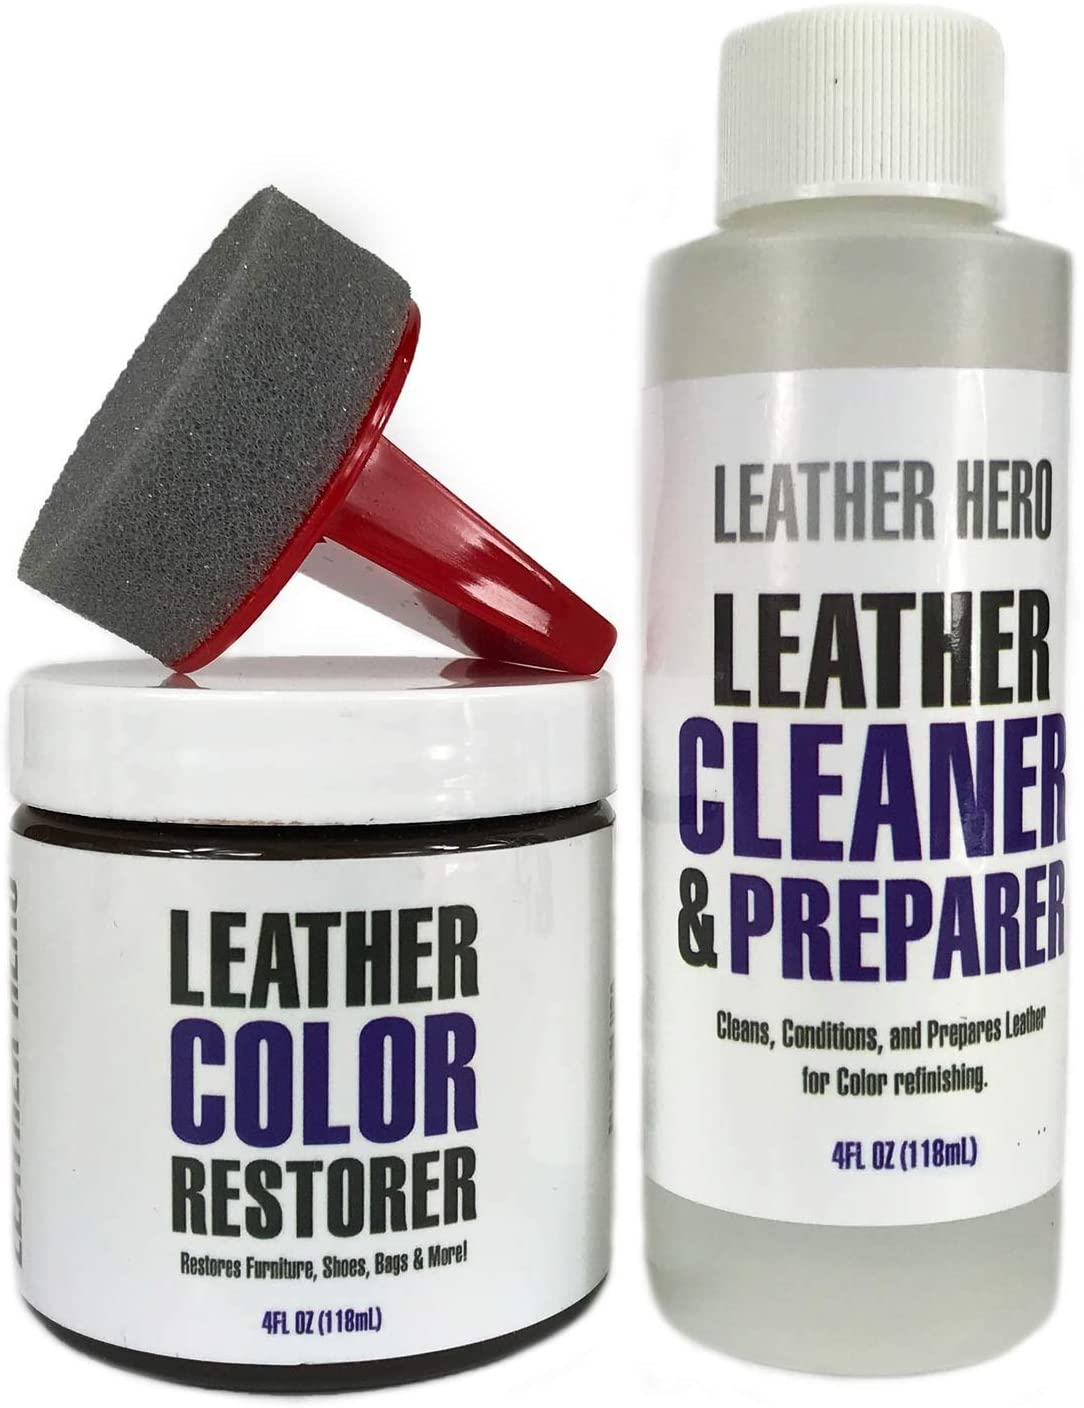 Leather Hero Leather Color Restorer Repair Kit- Refinish, Recolor, Renew Leather & Vinyl Sofa, Purse, Shoes, Auto Car Seats, Couch 4oz (Medium Brown)